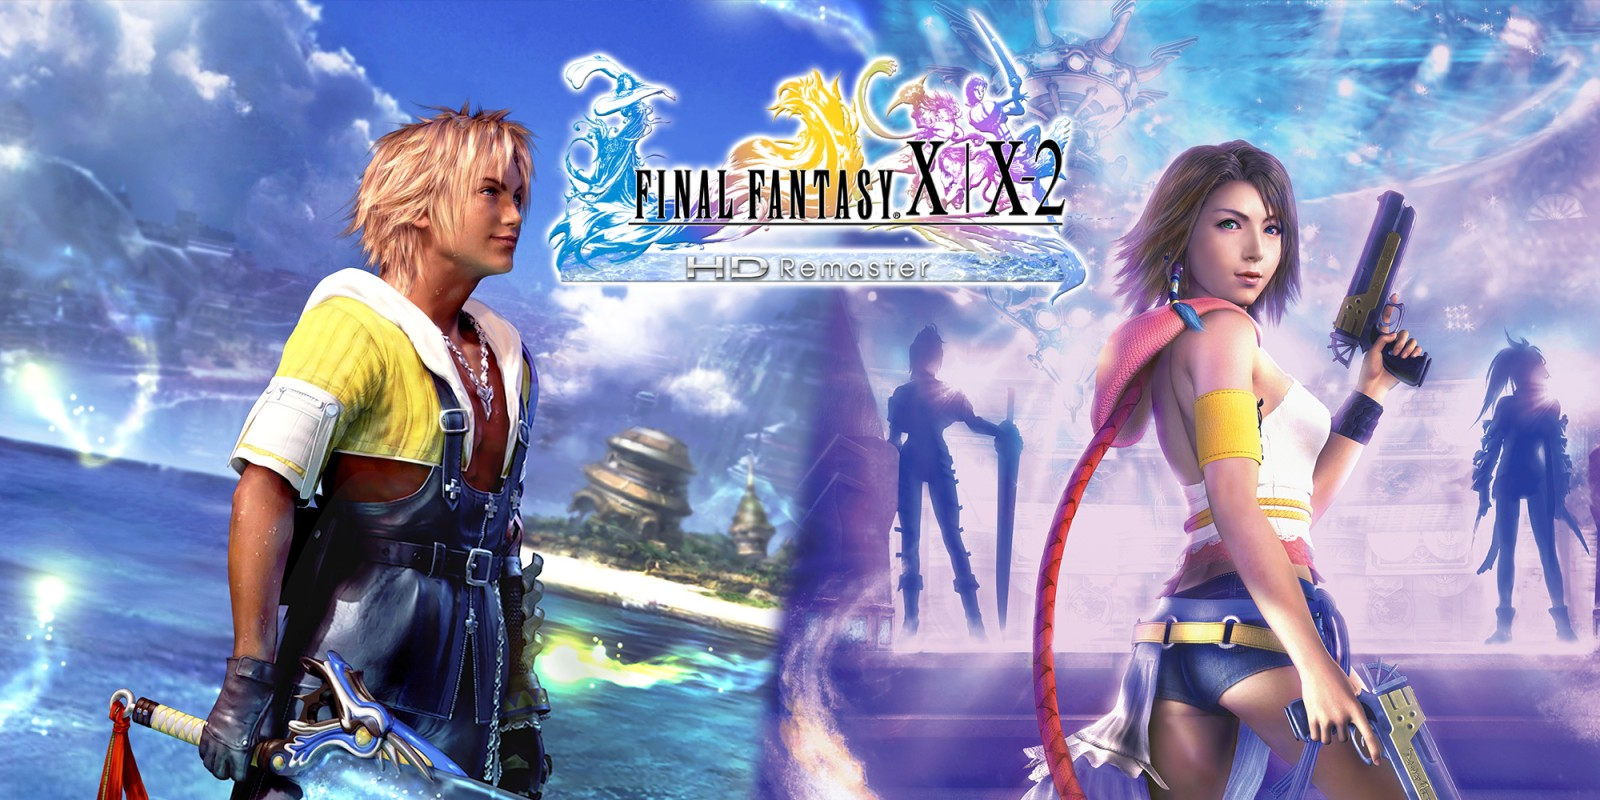 Today's Best Game Deals: Final Fantasy X|X-2 $10.50, Madden NFL 19 $10, more